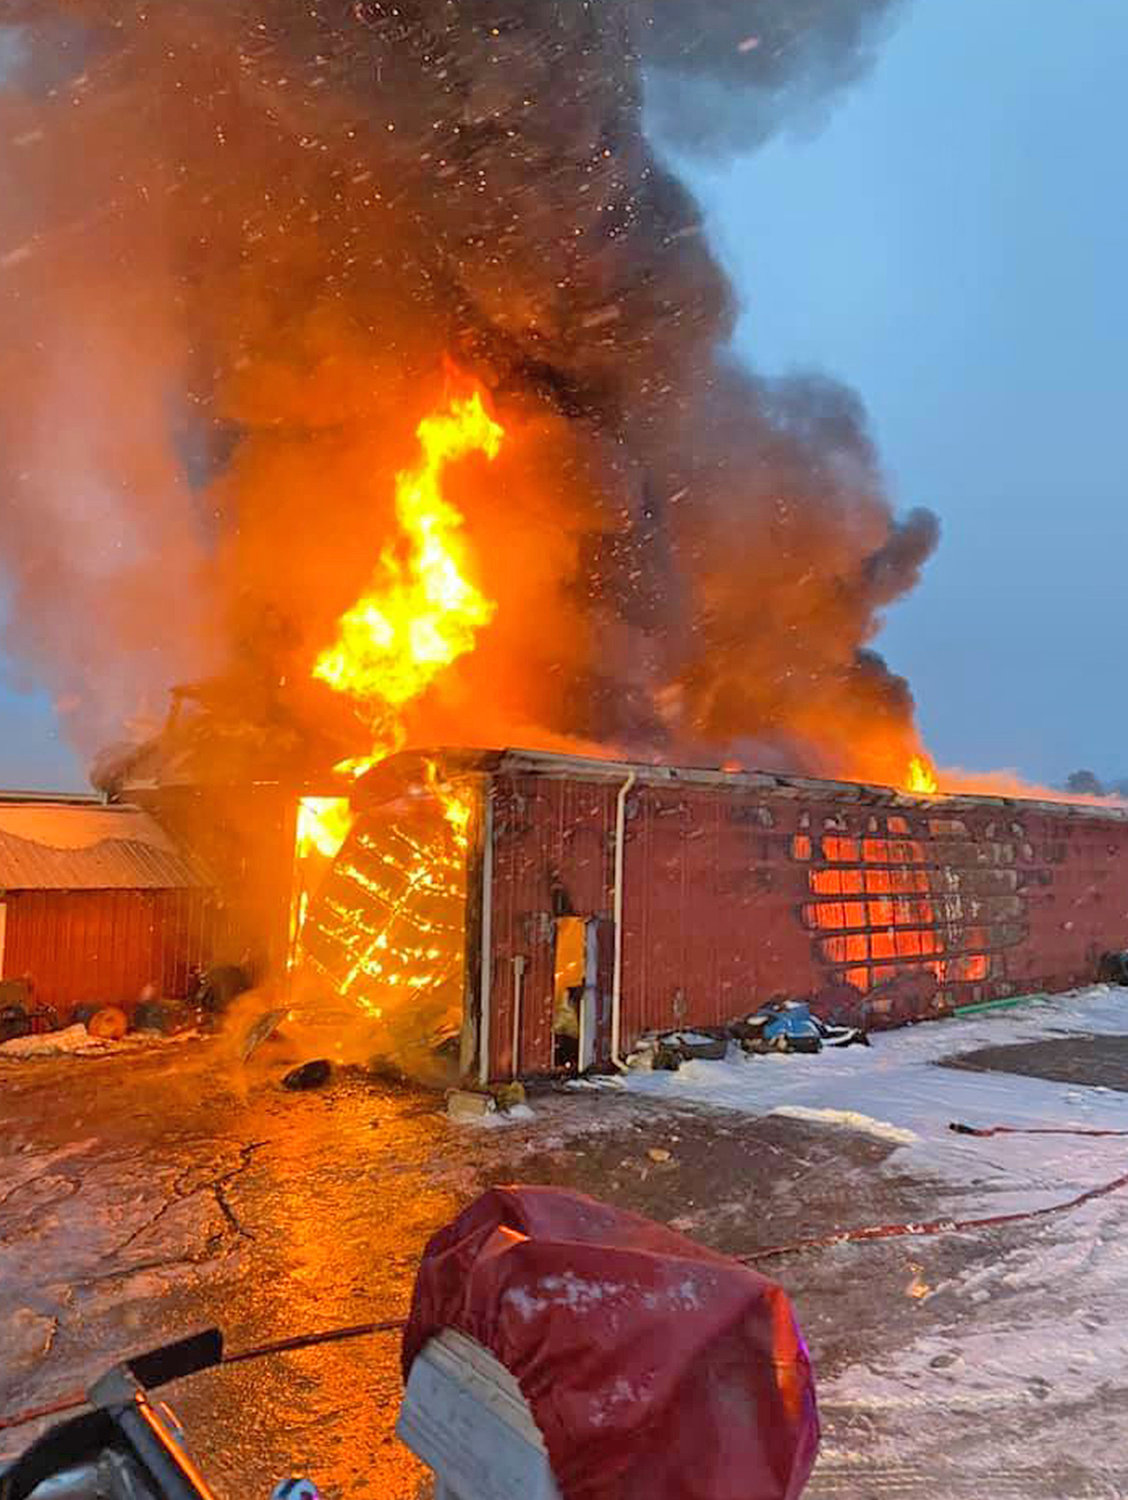 CHADWICKS BARN FIRE — Bright orange flames burst out of a barn at Collins Knoll Farm on Elm Street in Chadwicks Friday morning. Multiple fire departments spent several hours battling the blaze Friday morning.